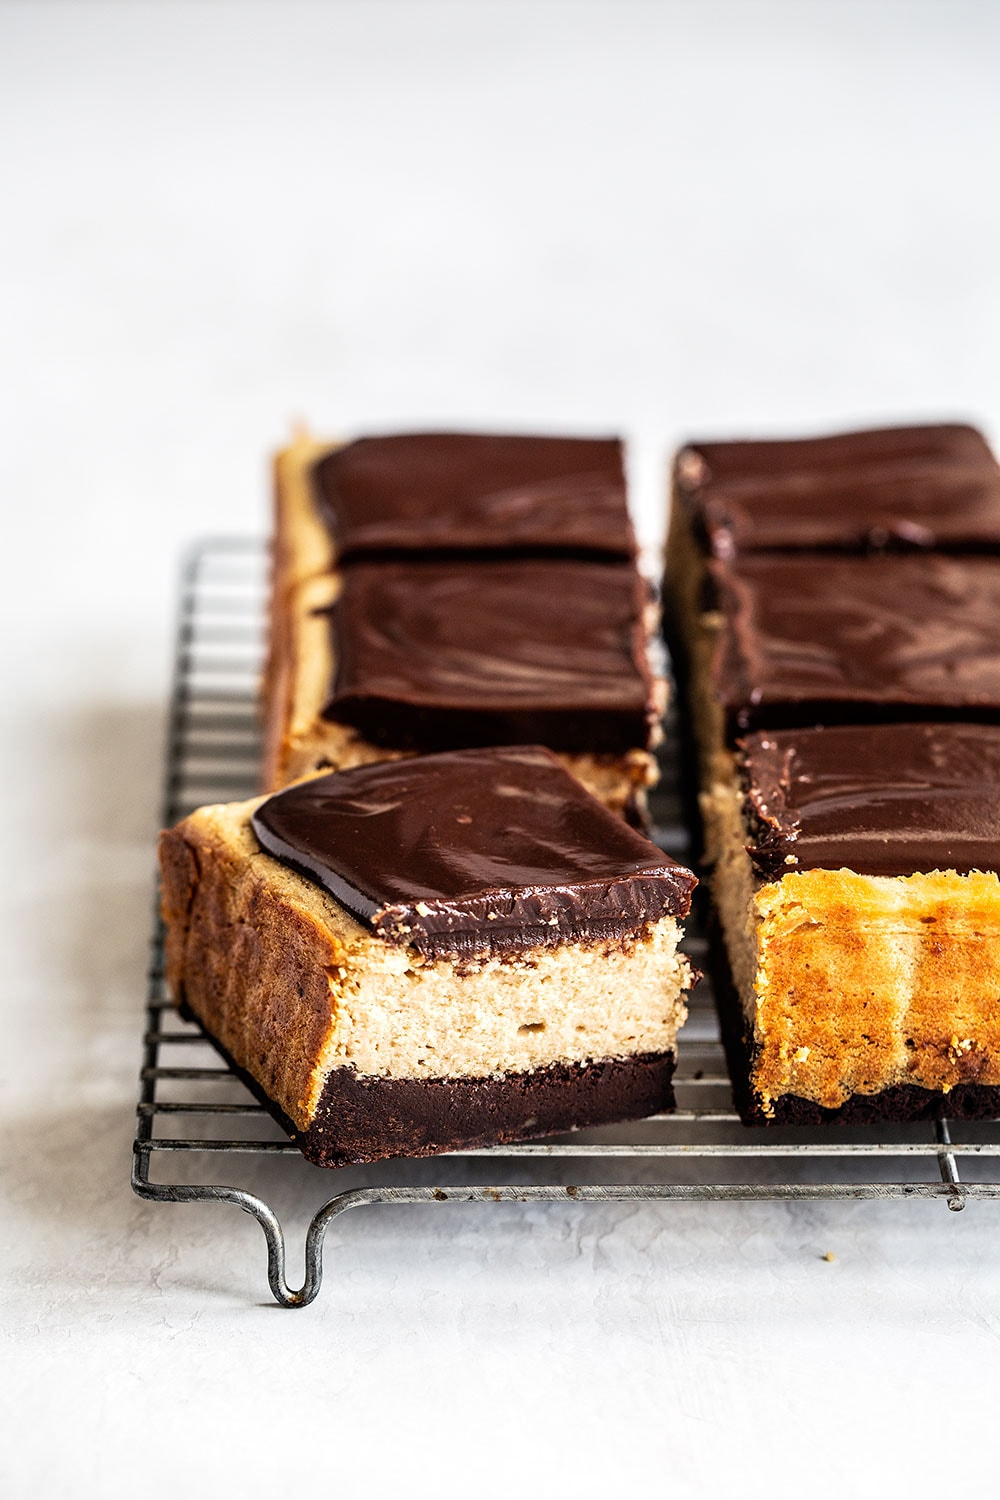 Peanut Butter Cheesecake Brownie Bars with ganache on a cooling rack